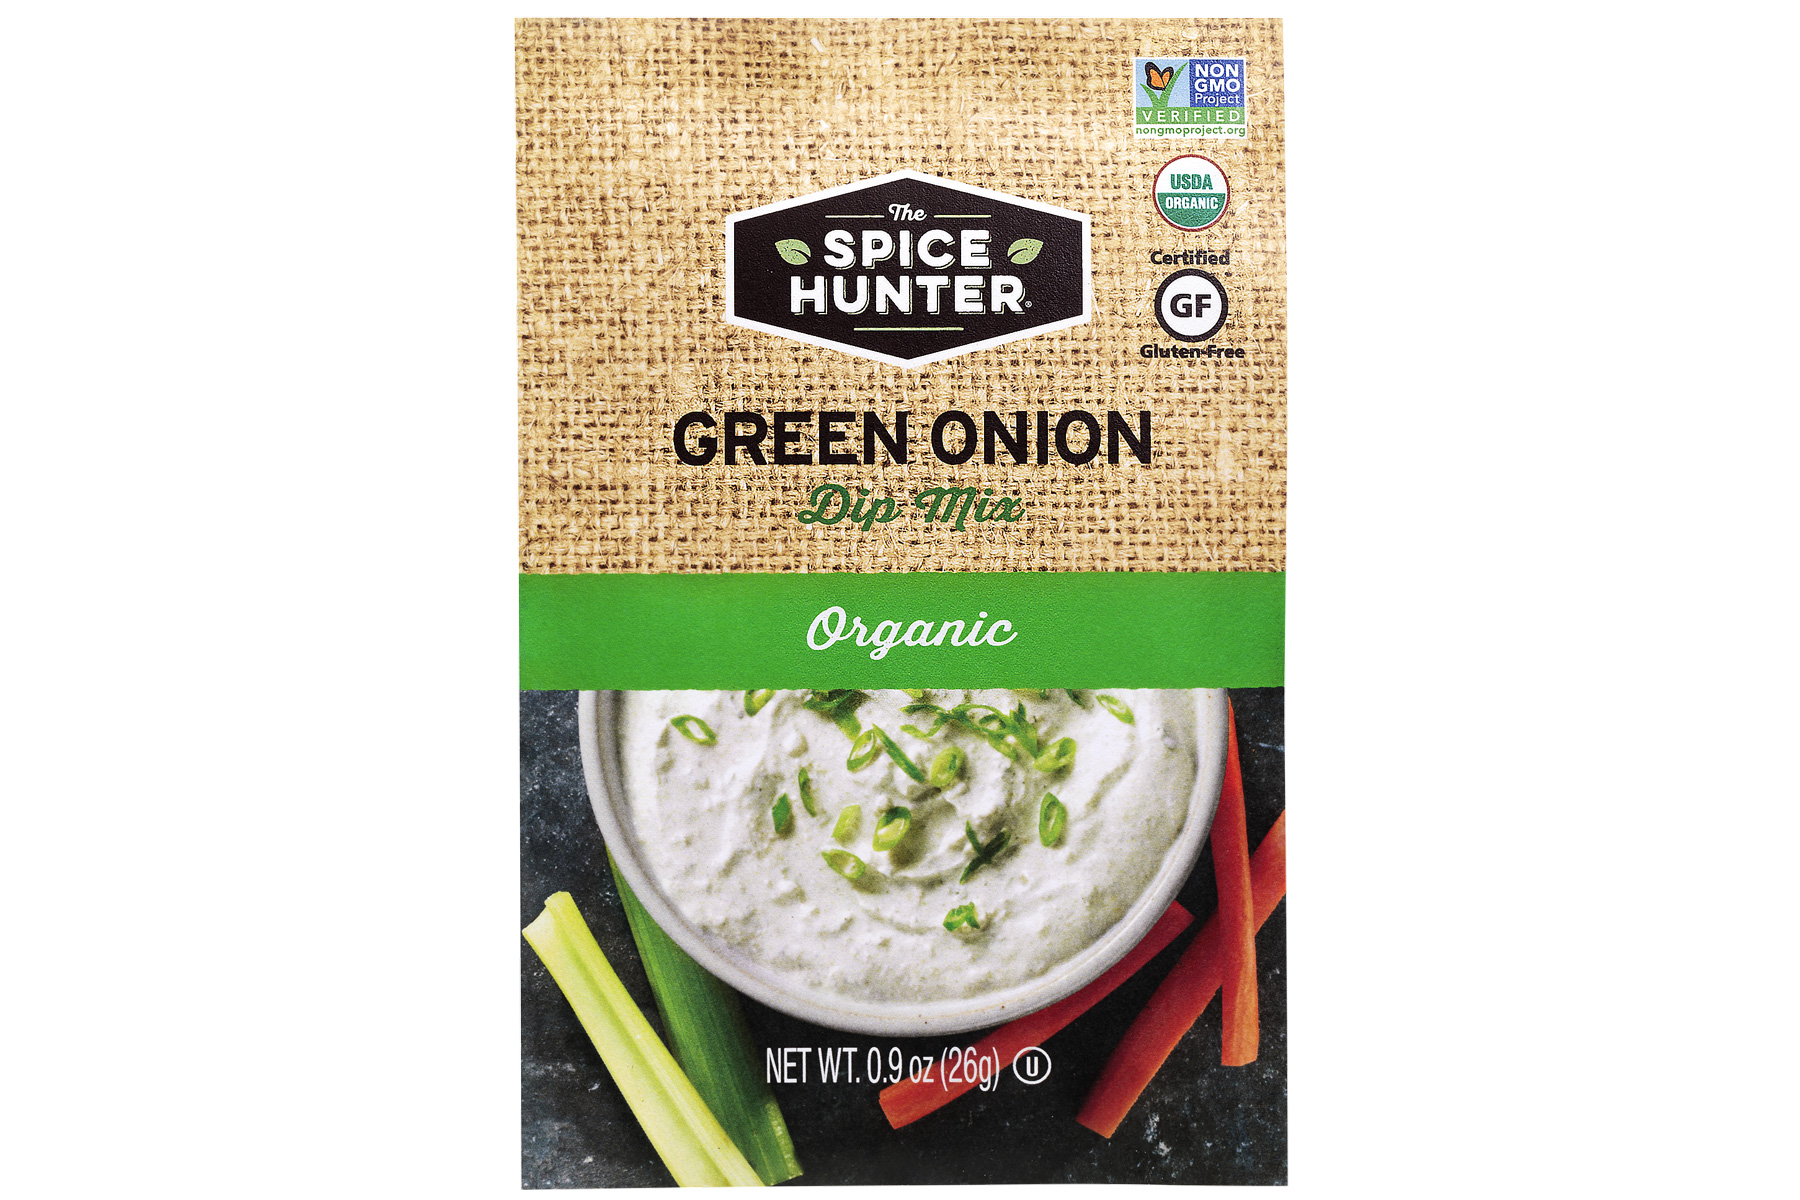 The Spice Hunter Organic Green Onion Dip Mix